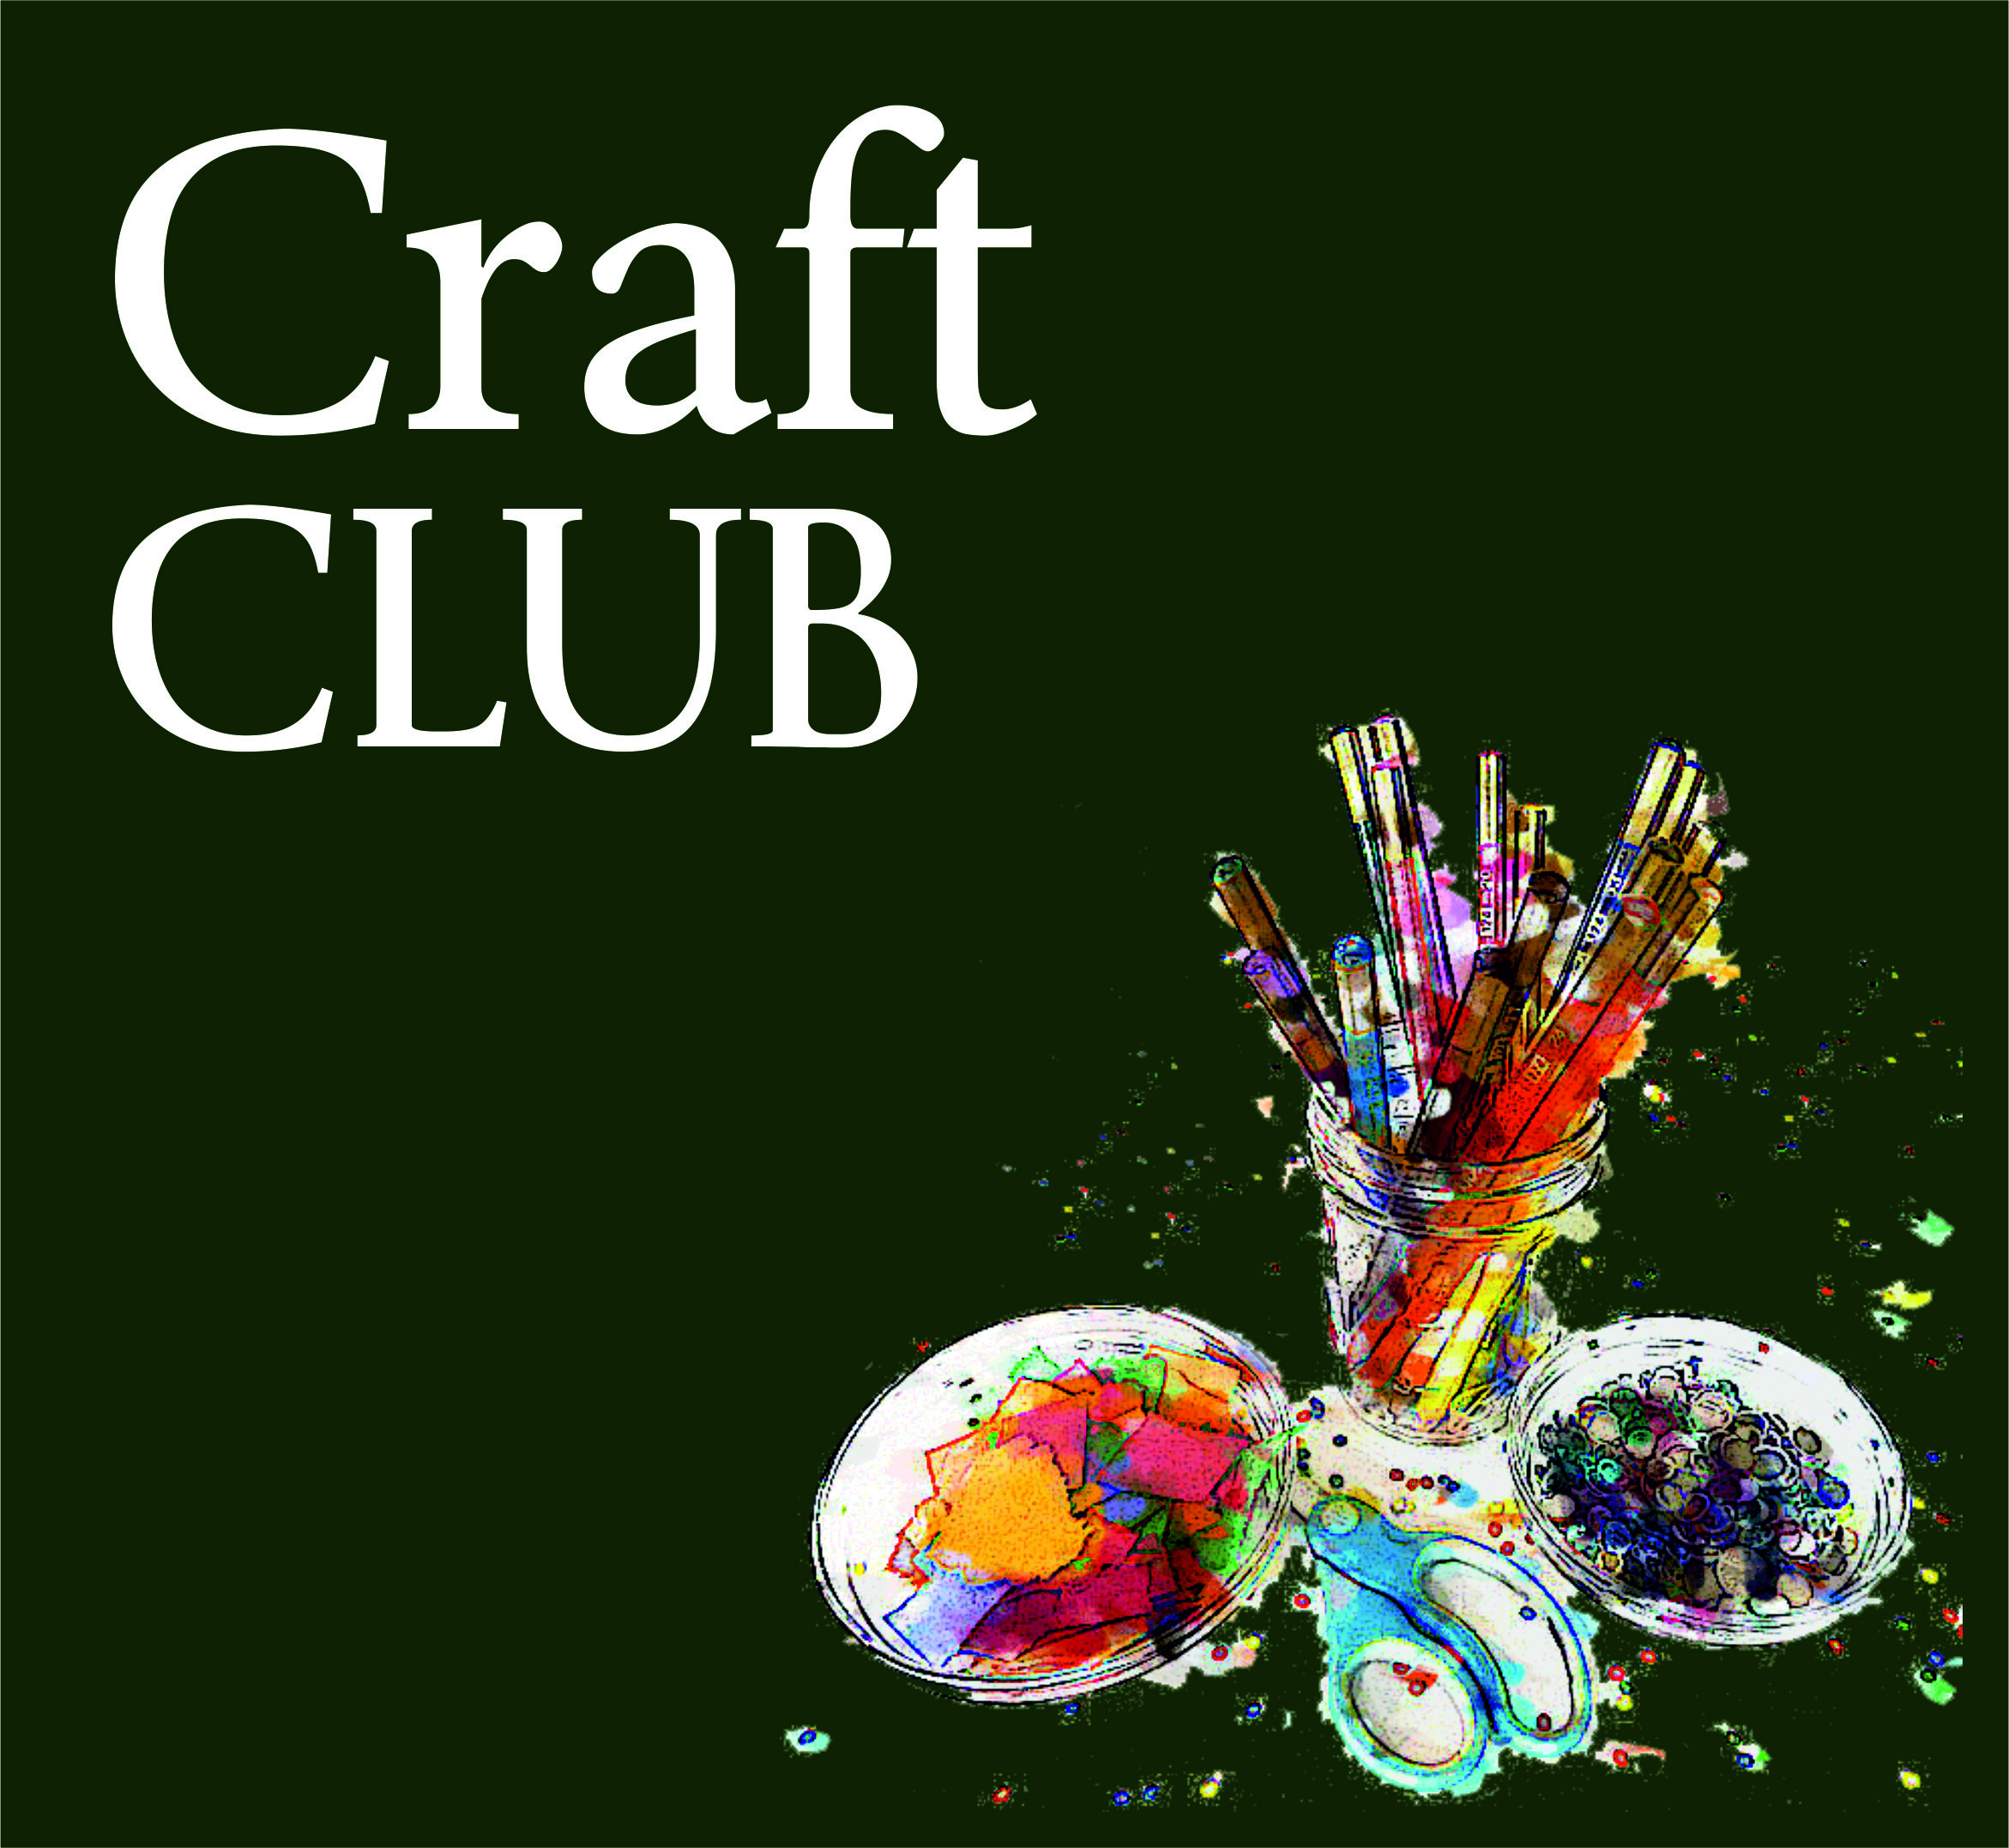 Events Template 2020 craft club WH